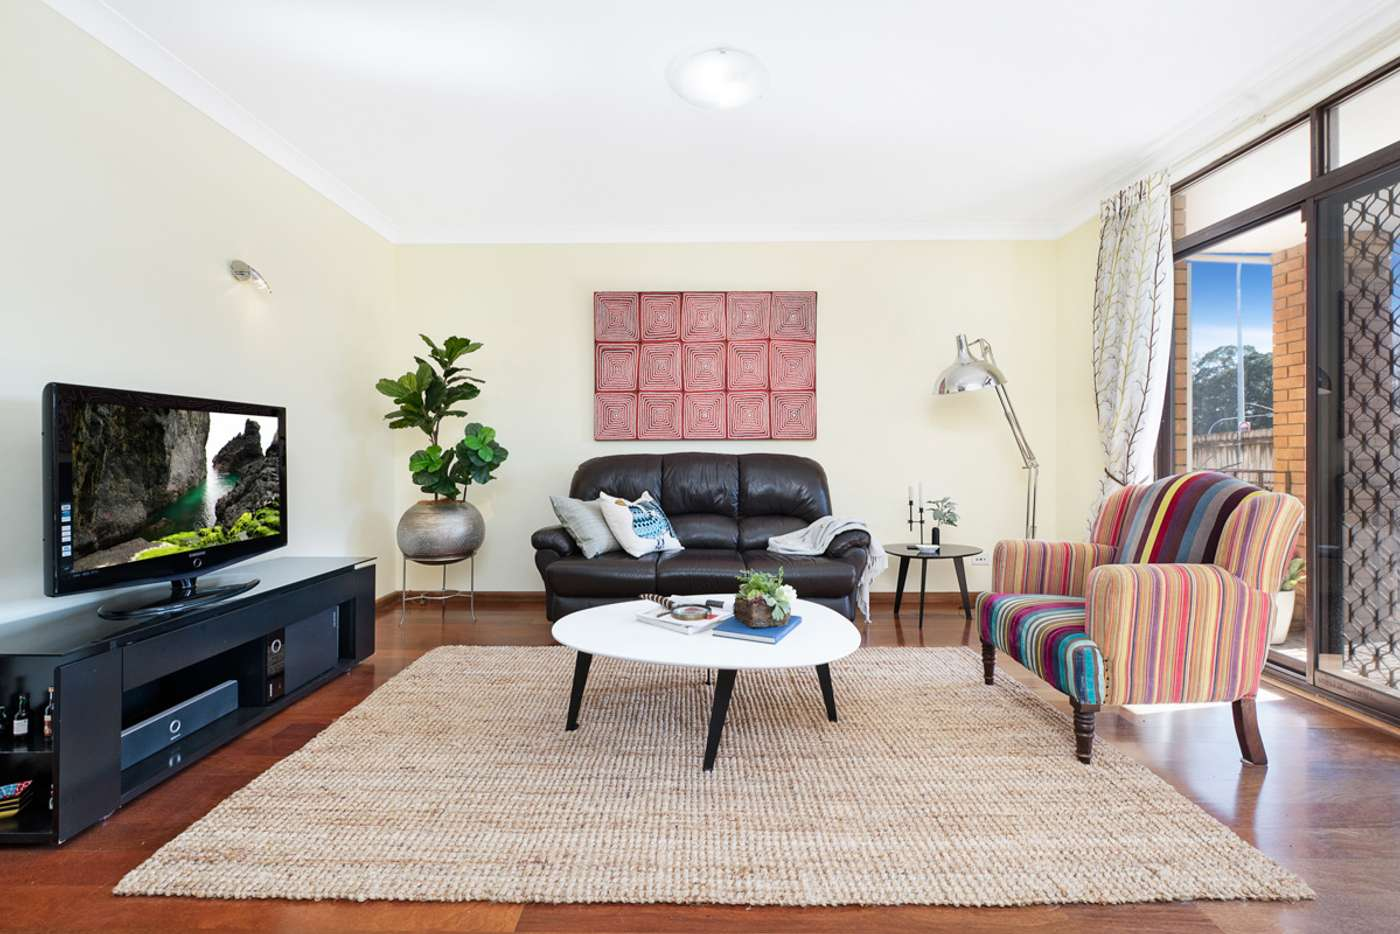 Main view of Homely unit listing, 3/77 Chandos St, Ashfield NSW 2131